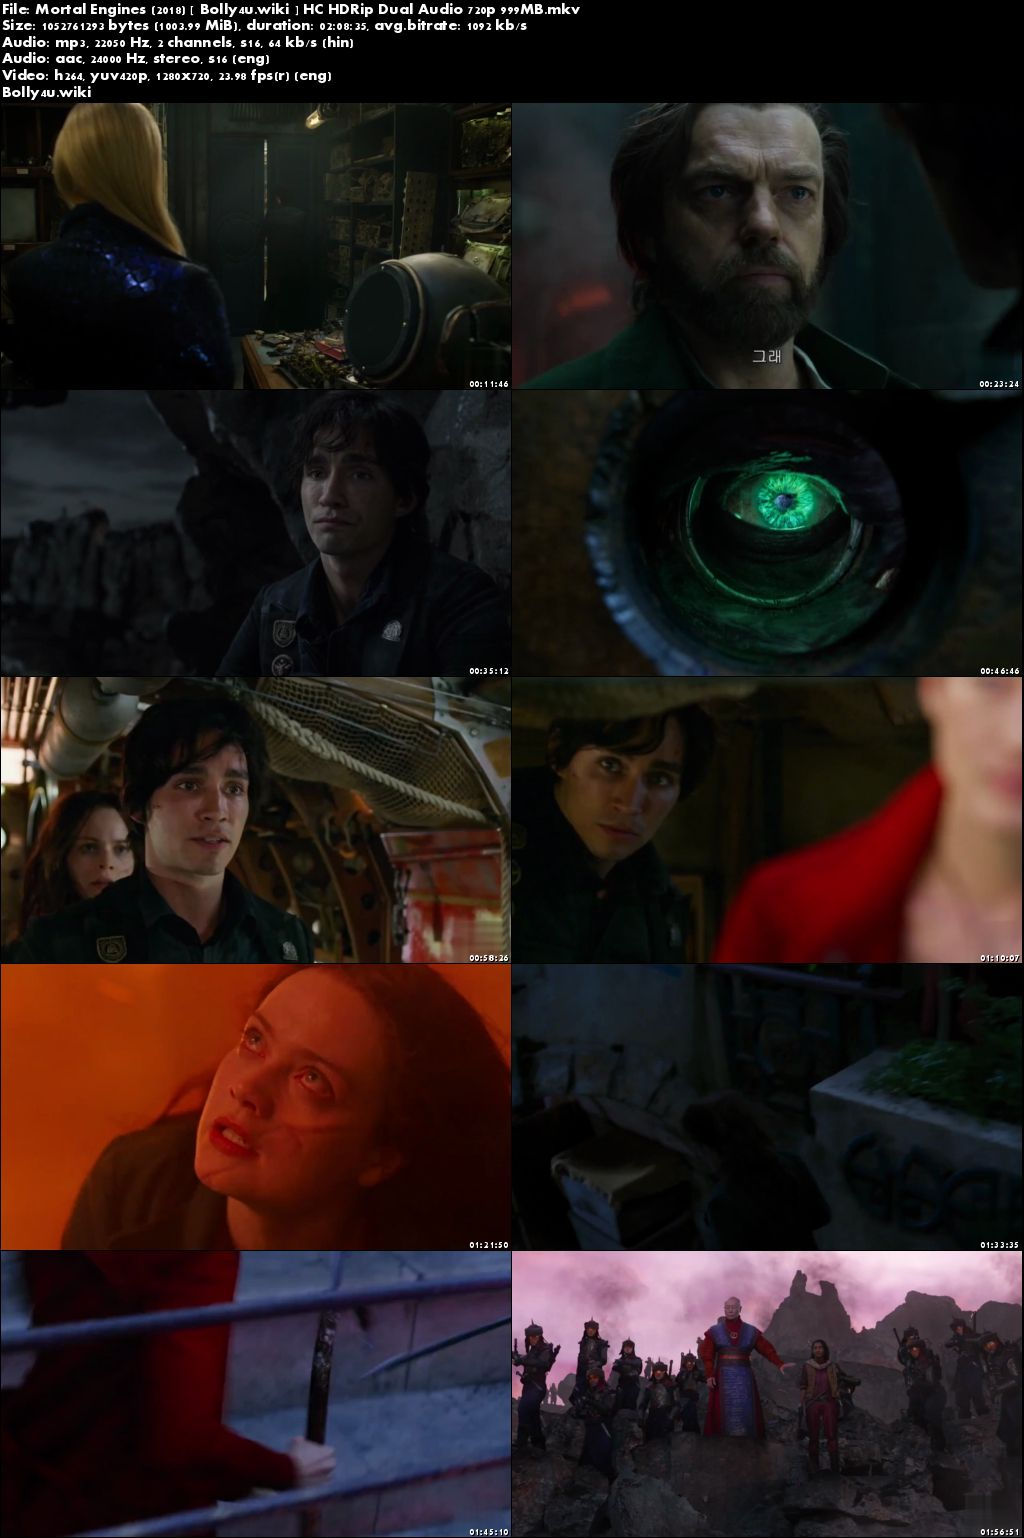 Mortal Engines 2018 HC HDRip 999MB Hindi Dual Audio 720p Download